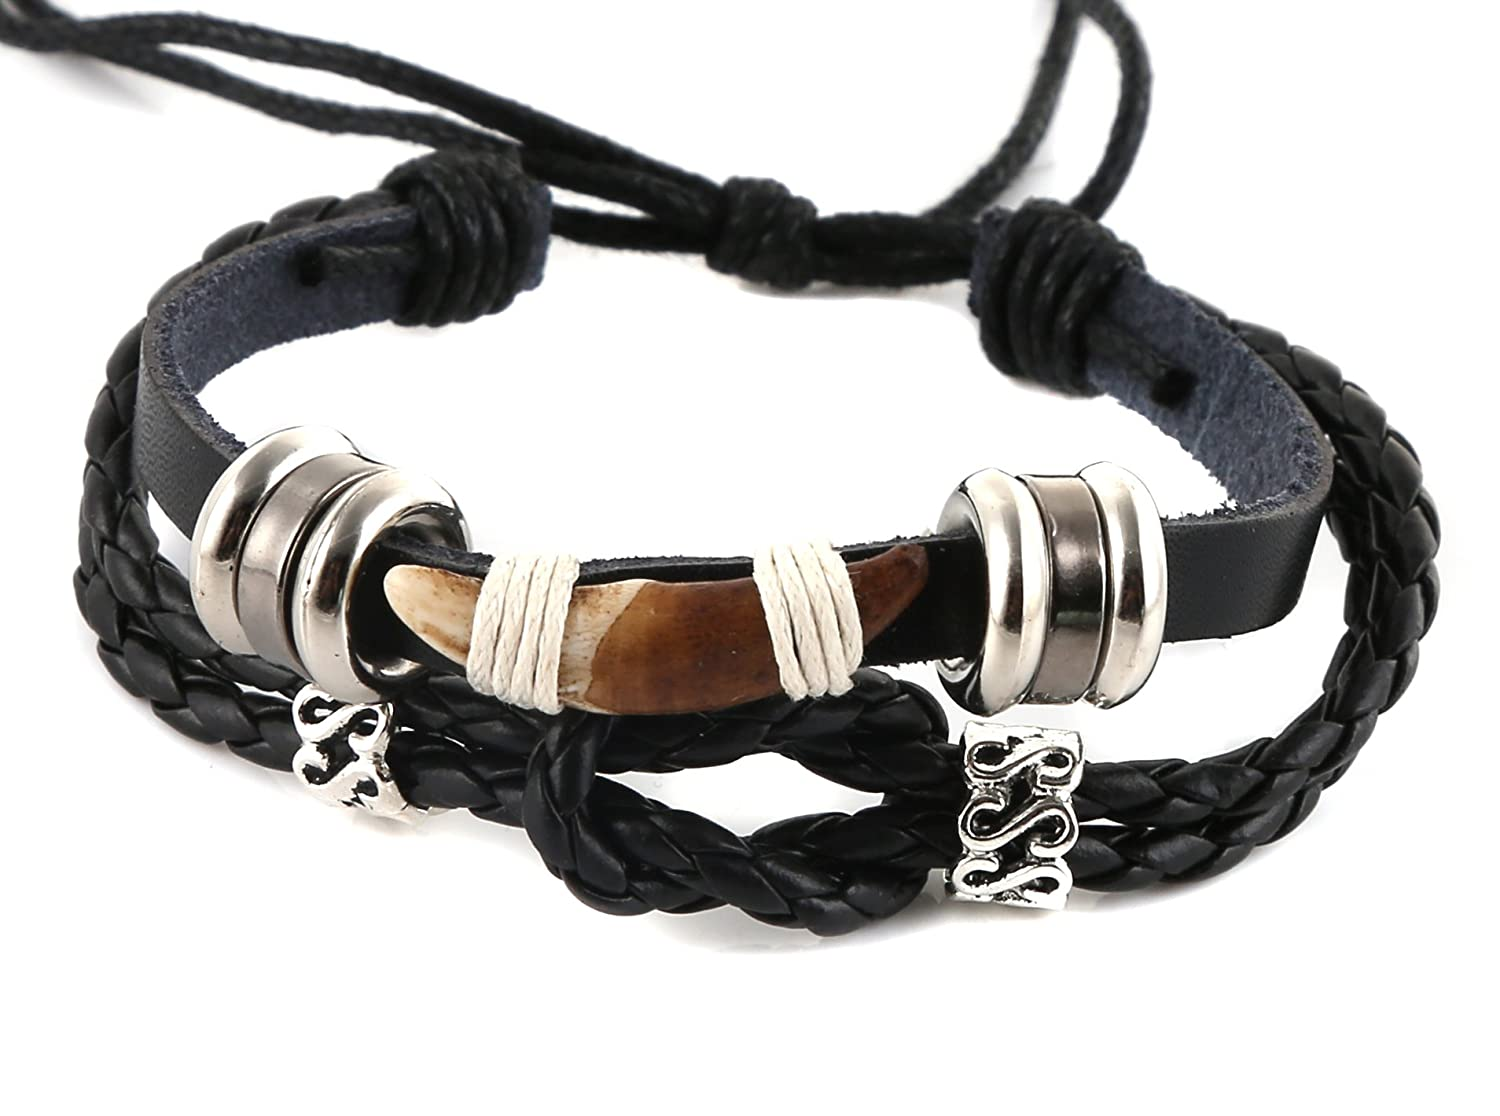 HZMAN Tibetan Style Real Wolf Tooth Silver Beads Adjustable Cord Bracelet, Prehistoric Caveman Tribal s101709A